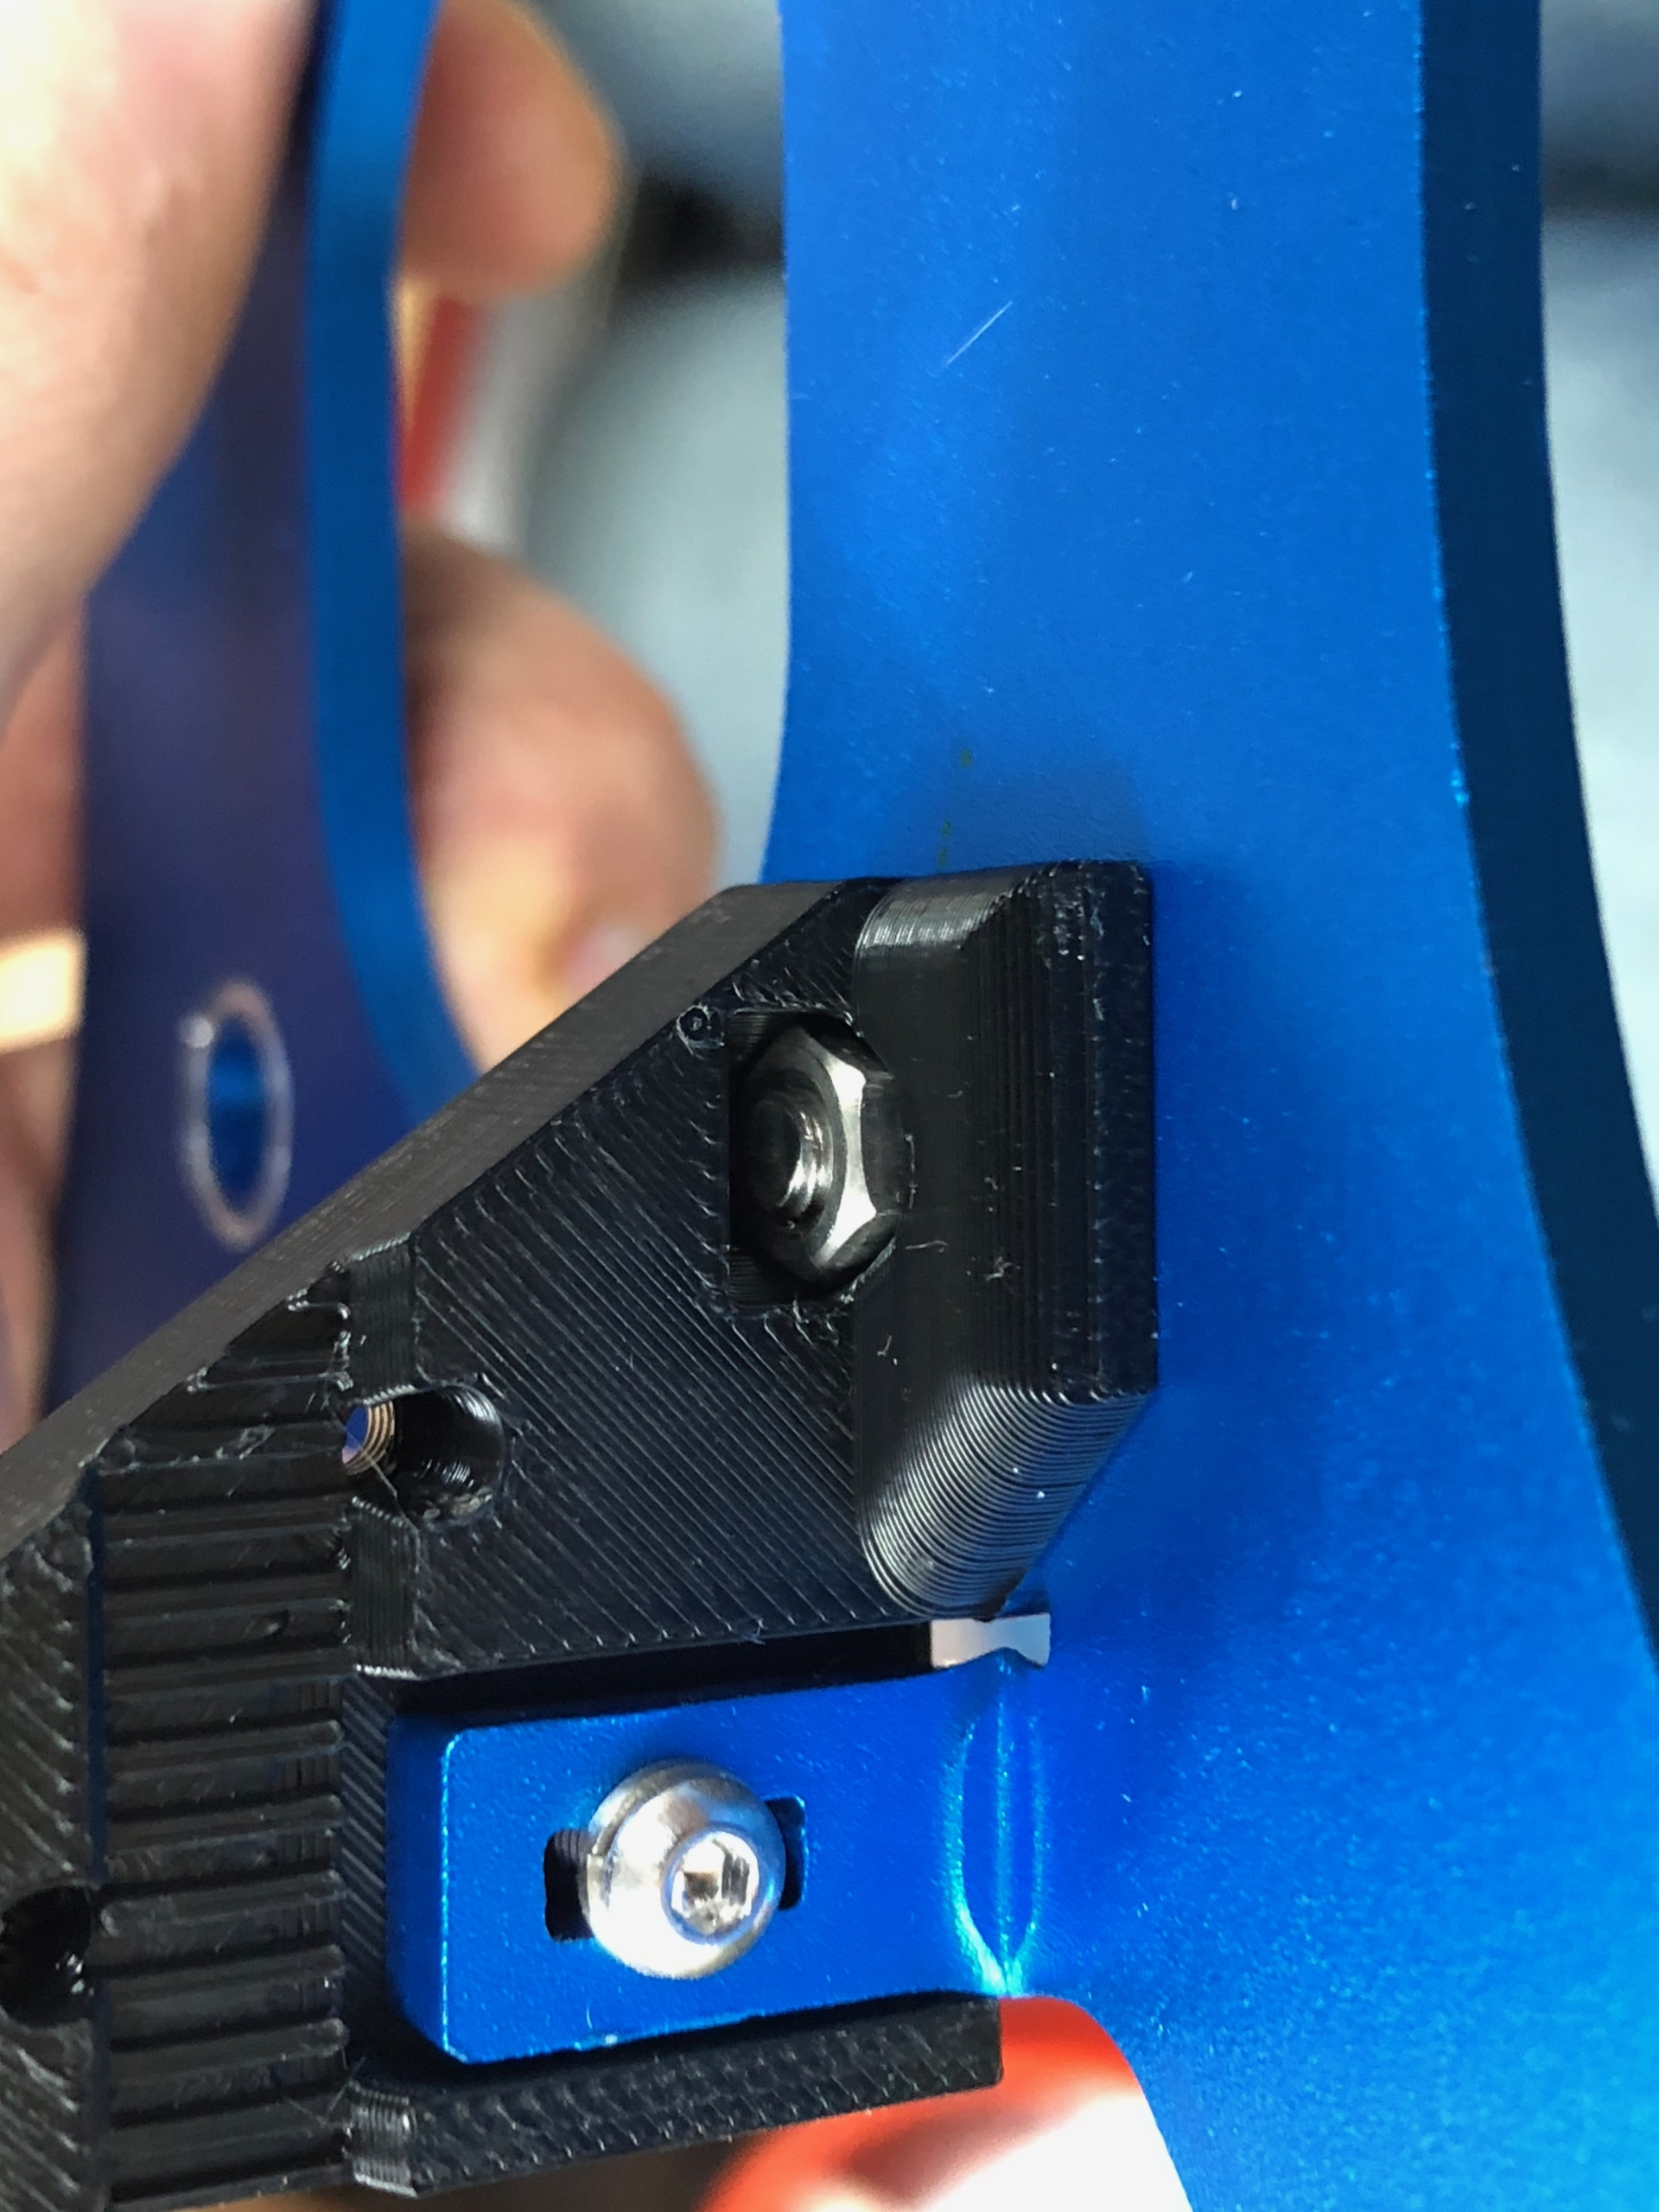 clamp detail scaled | Artillery Linear Rail Y Axis Mod Guide: Sidewinder X1 and Genius